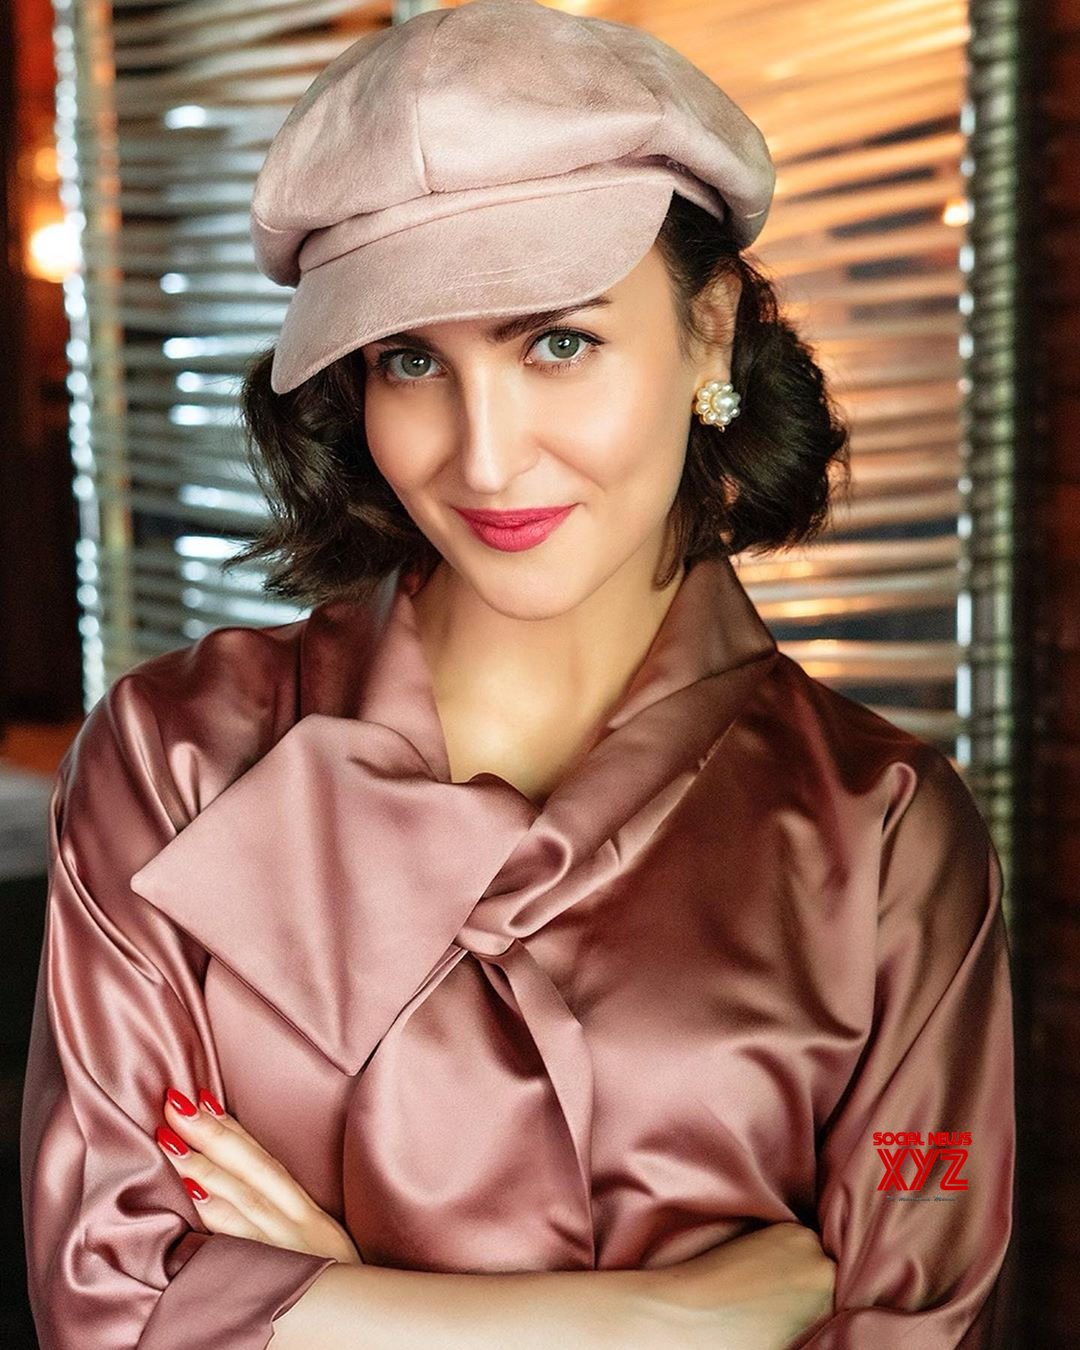 Vintage Look Actress Elli Avrram Stunning Vintage Look Stills - Social News Xyz